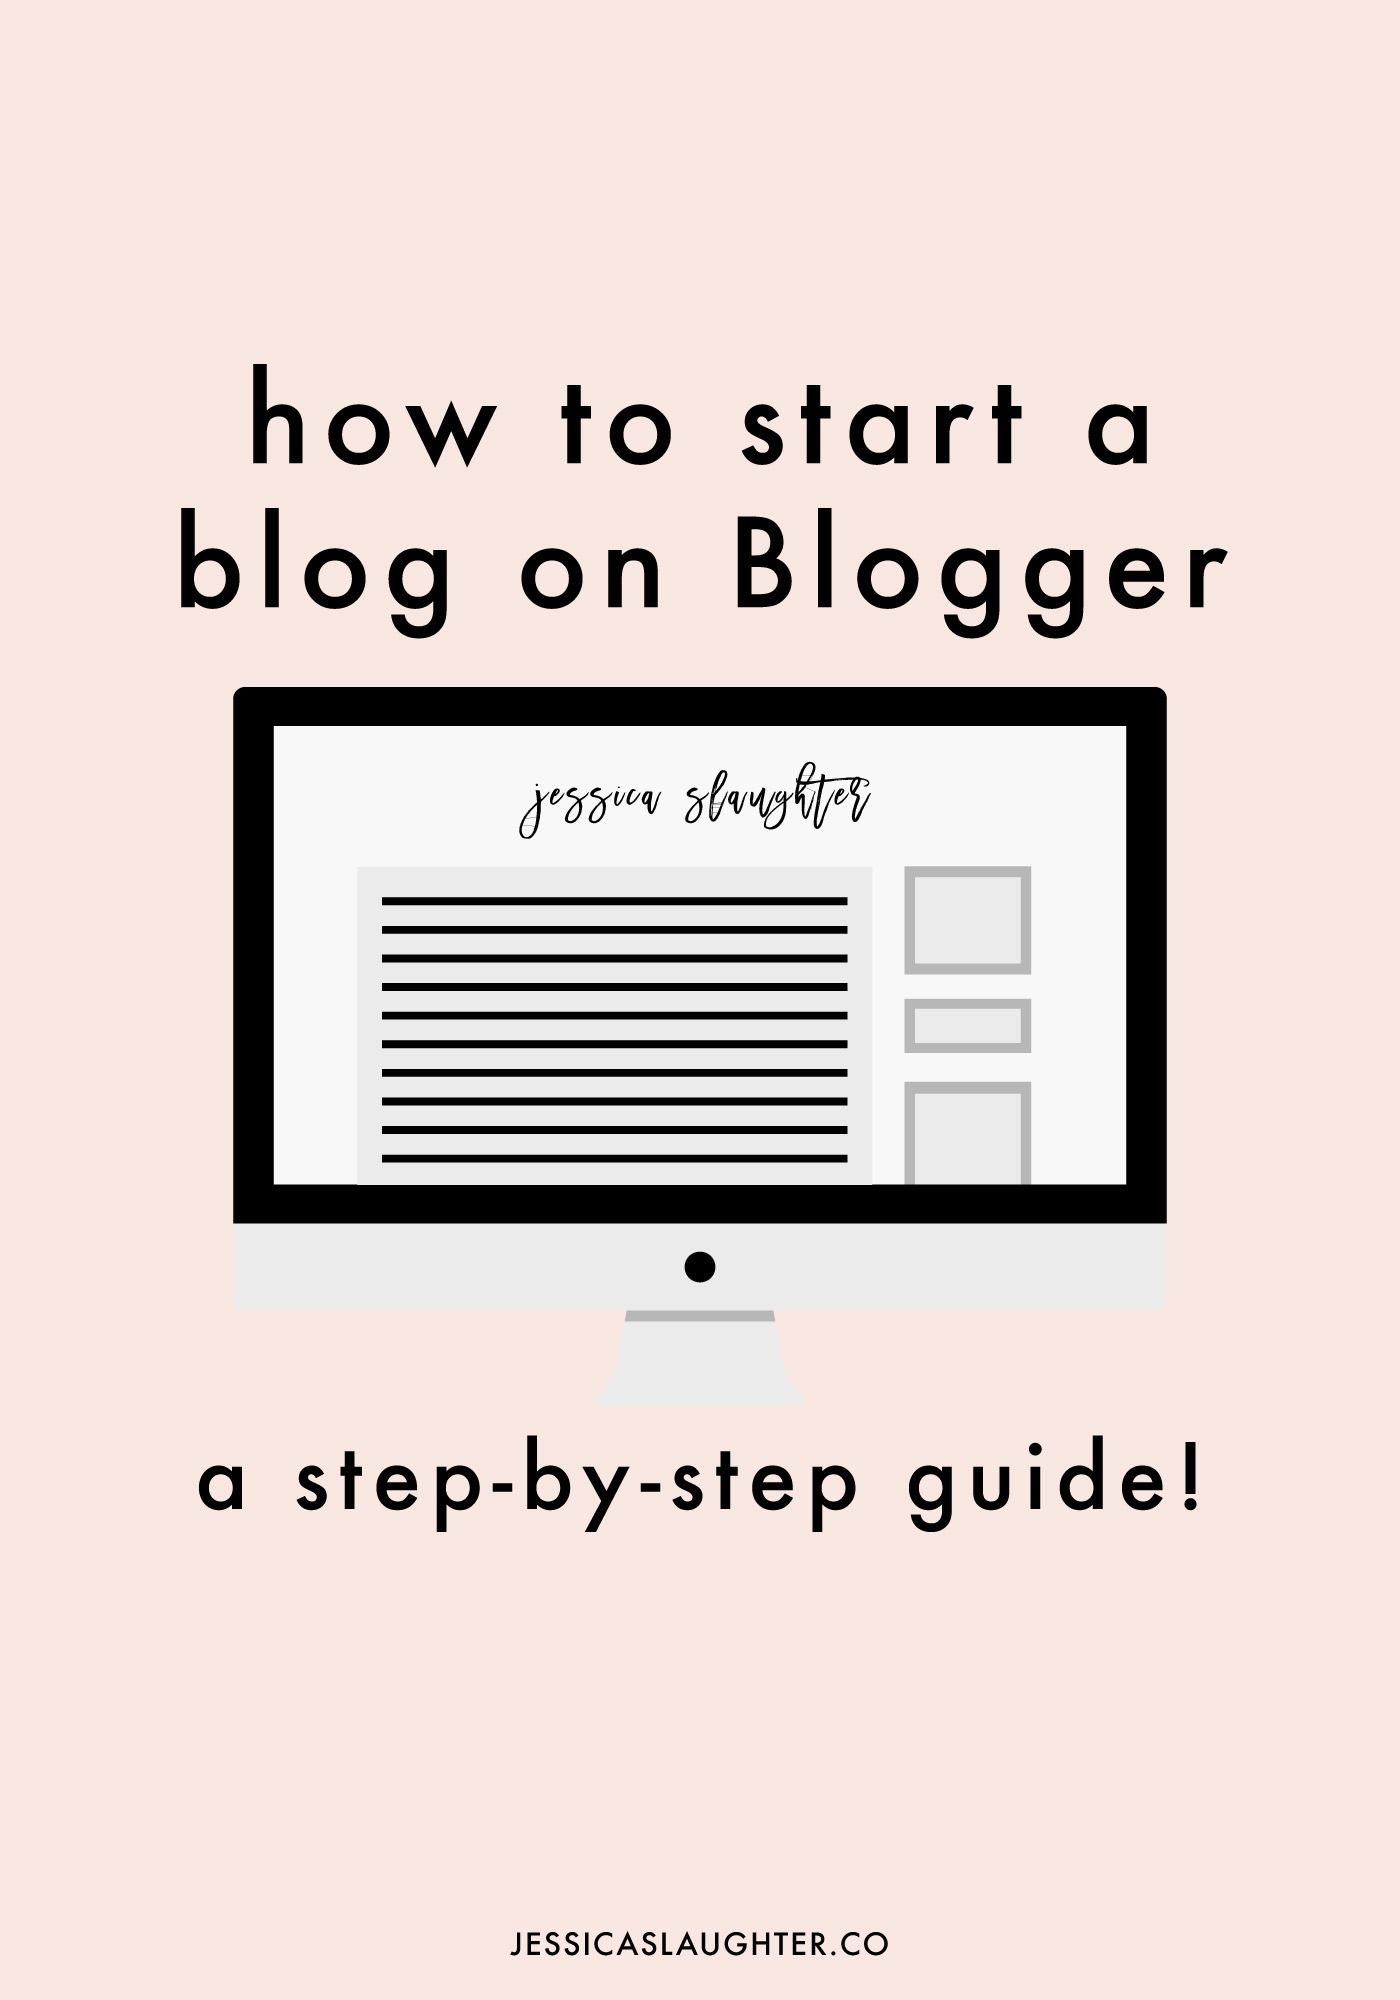 Start your own blog for free in minutes!